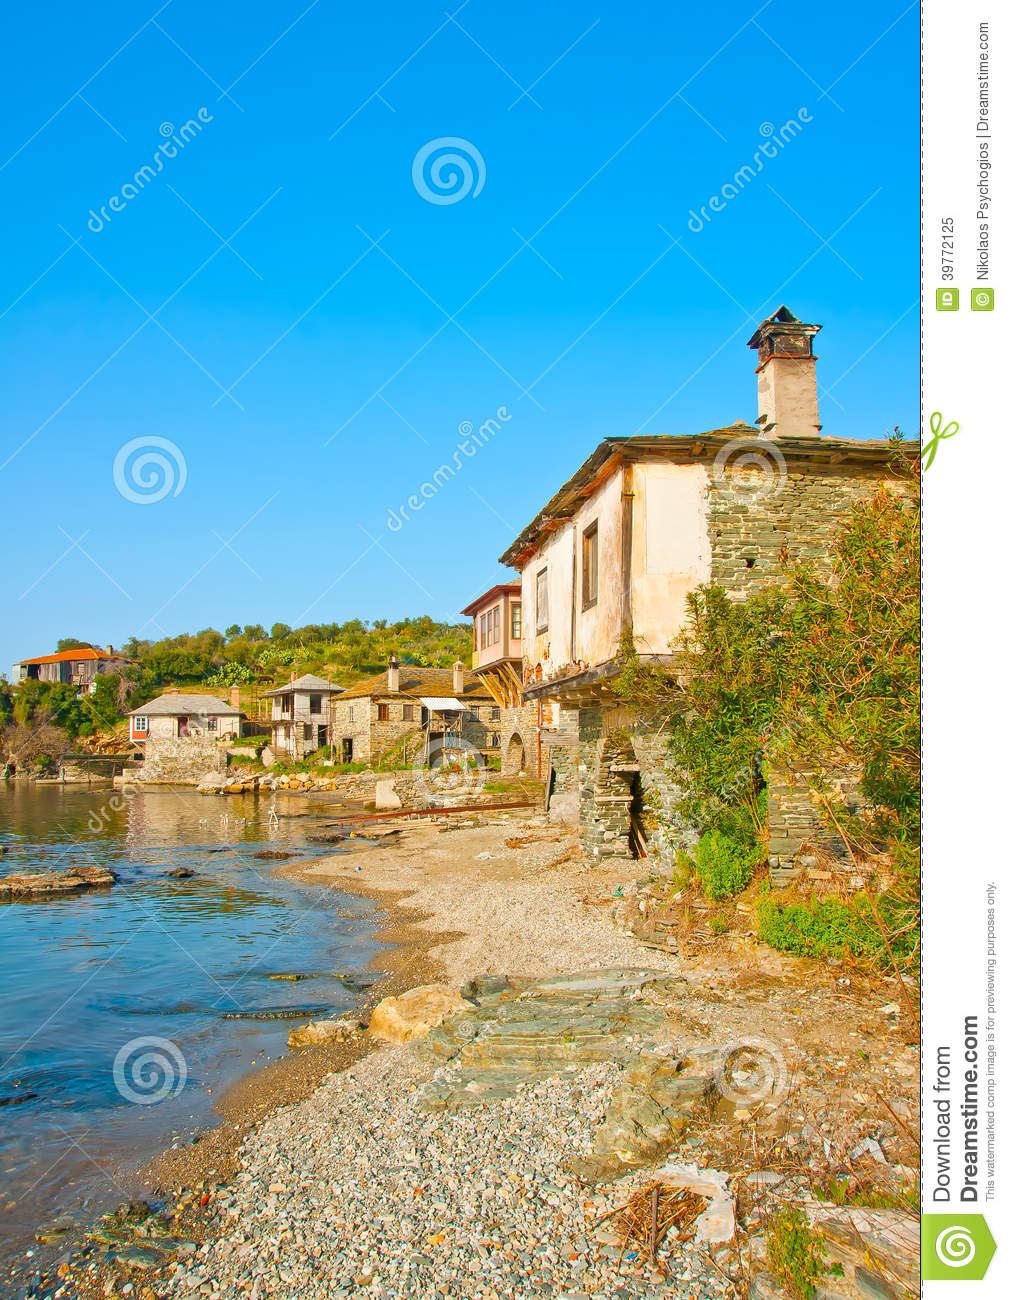 Pictures of houses on the beach - Athos Beach